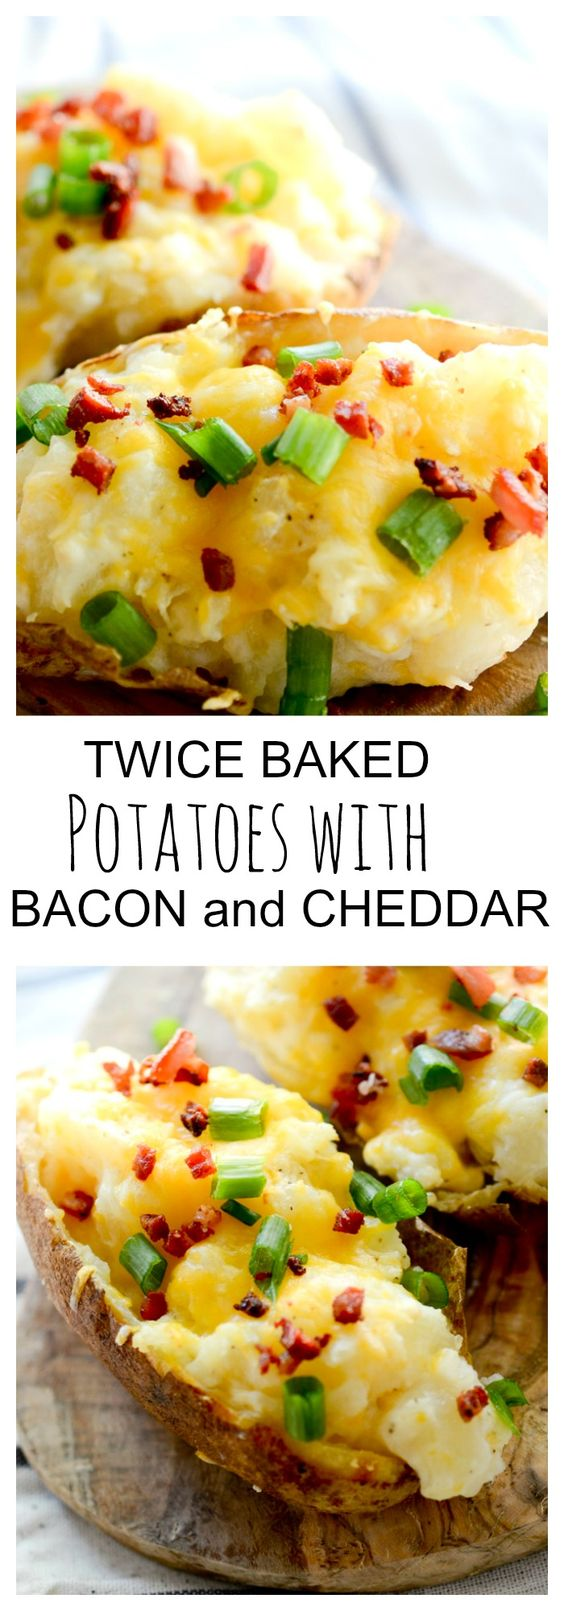 Twice baked potatoes, Baked potatoes and Cheddar on Pinterest